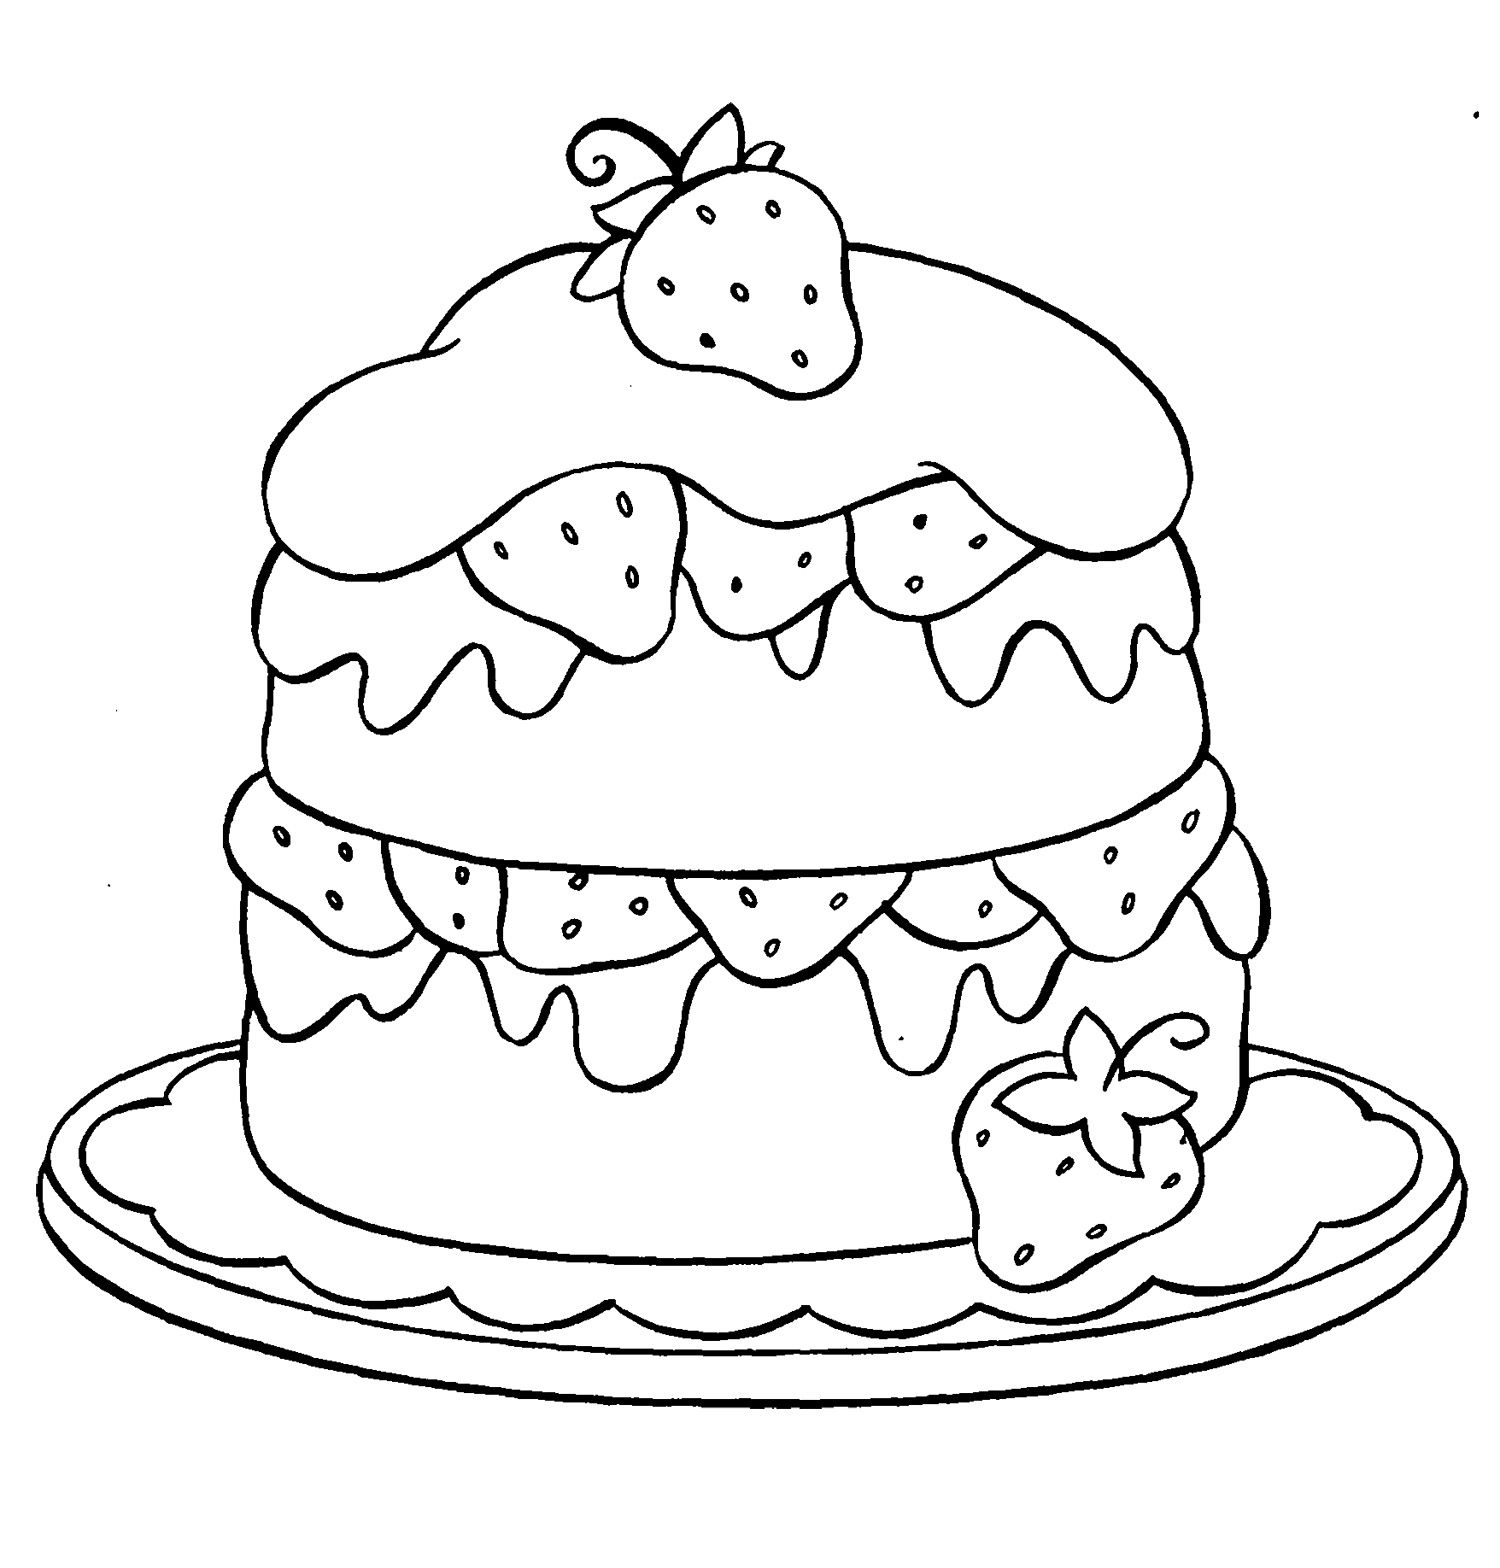 Cupcake Strawberry Coloring Page Ice Cream Cupcakes Candy